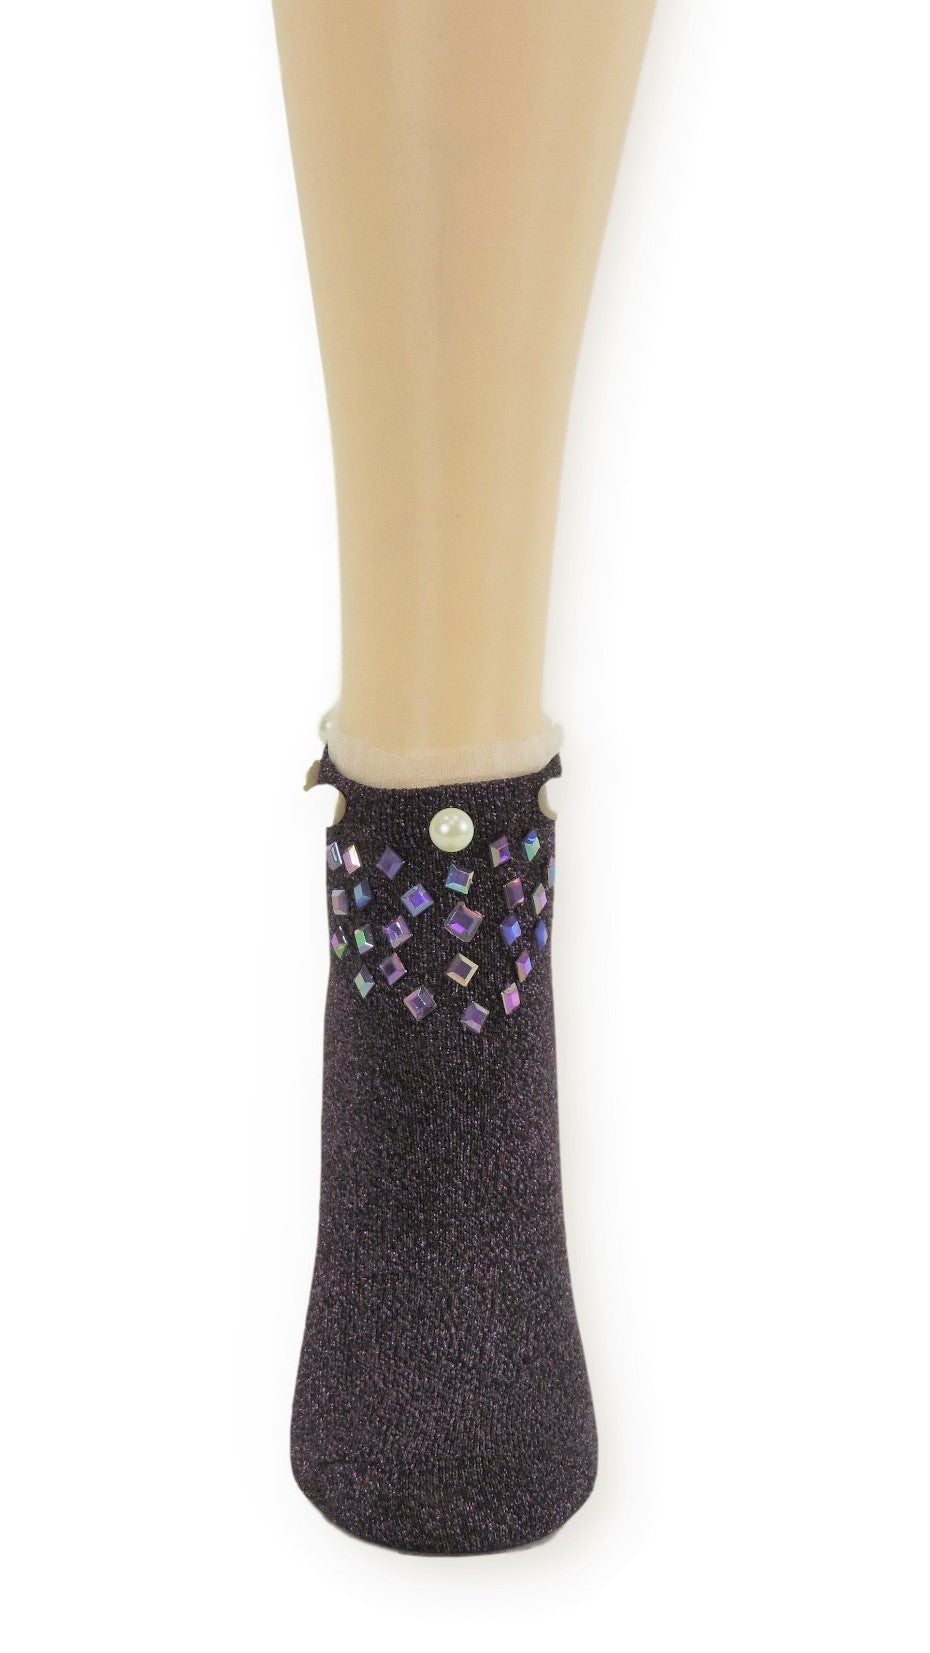 Stunning Purple Custom Ankle Socks with crystals - Global Trendz Fashion®